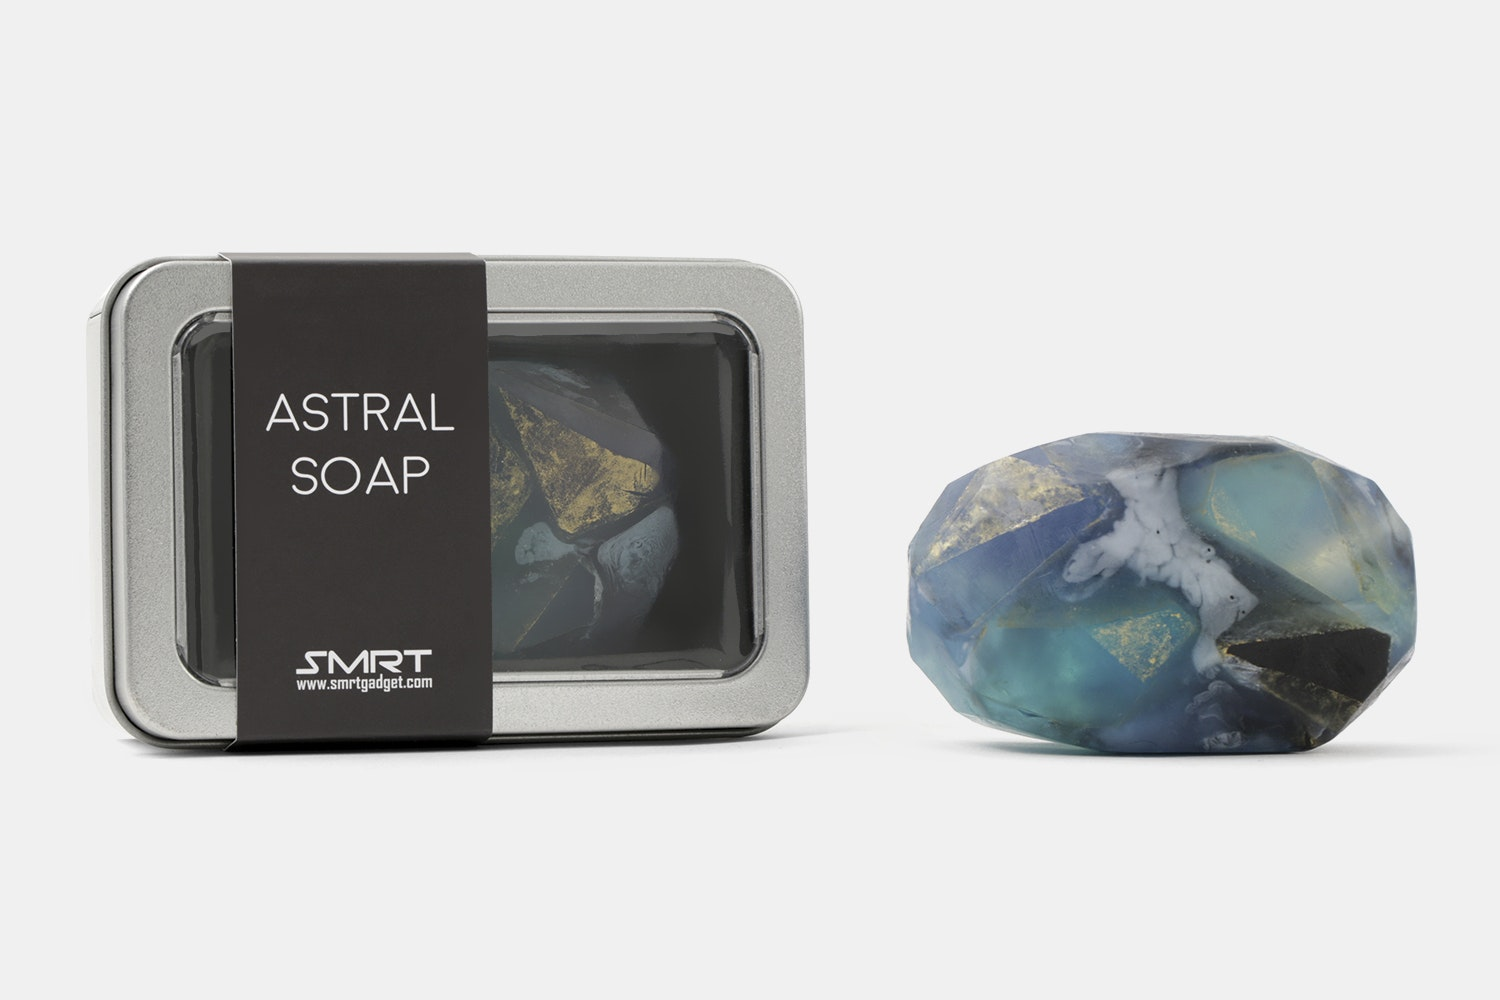 SMRT Gadget Astral Soap